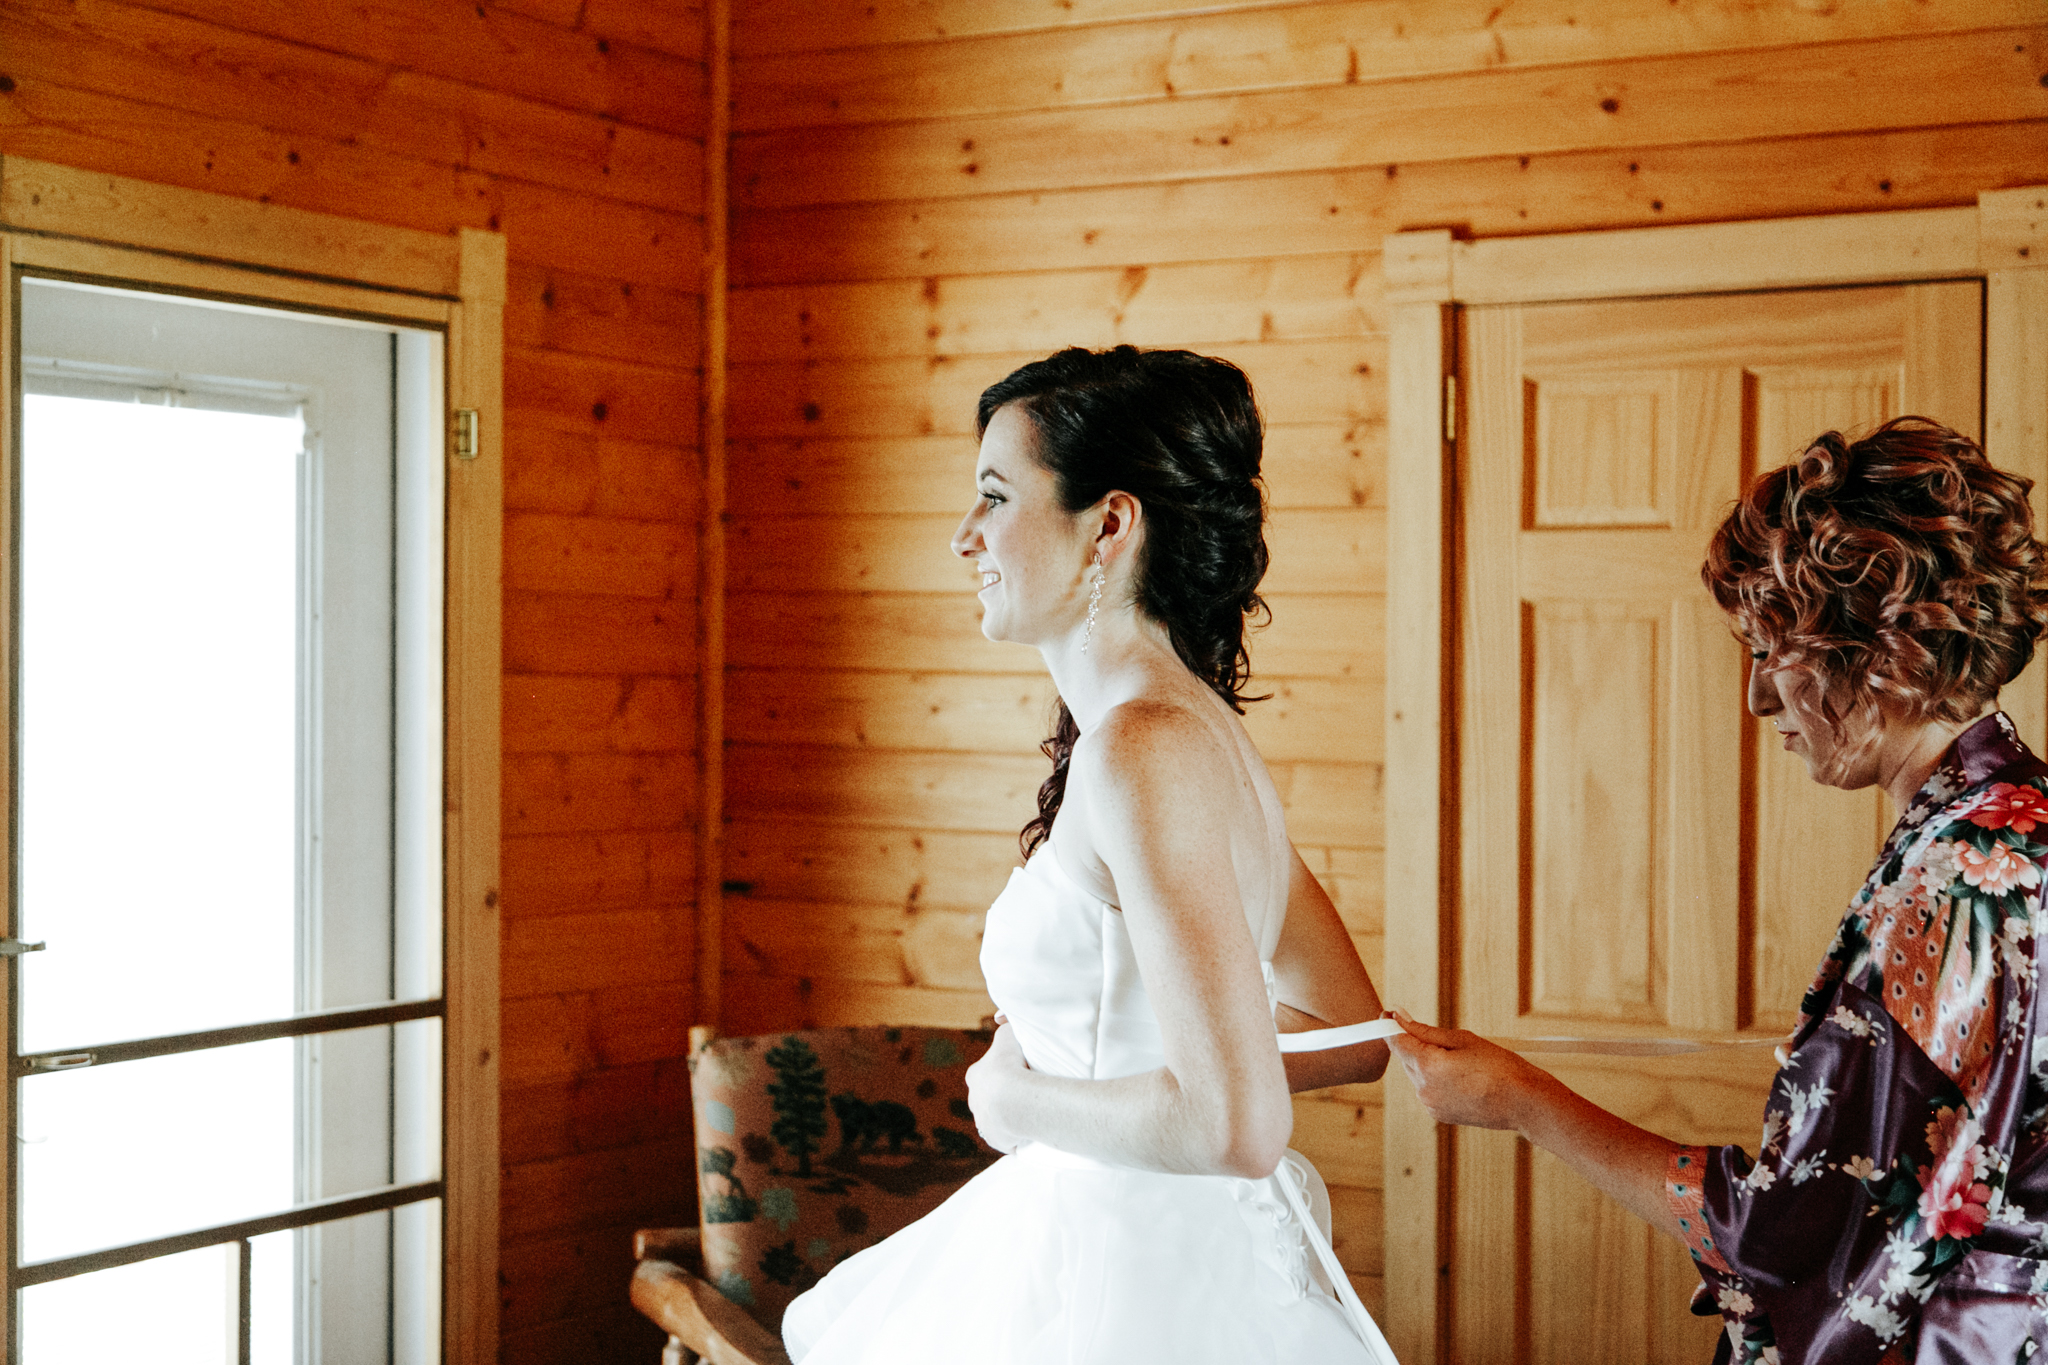 waterton-wedding-photographer-love-and-be-loved-photography-lethbridge-calgary-adam-jodie-image-picture-photo-8 copy.jpg